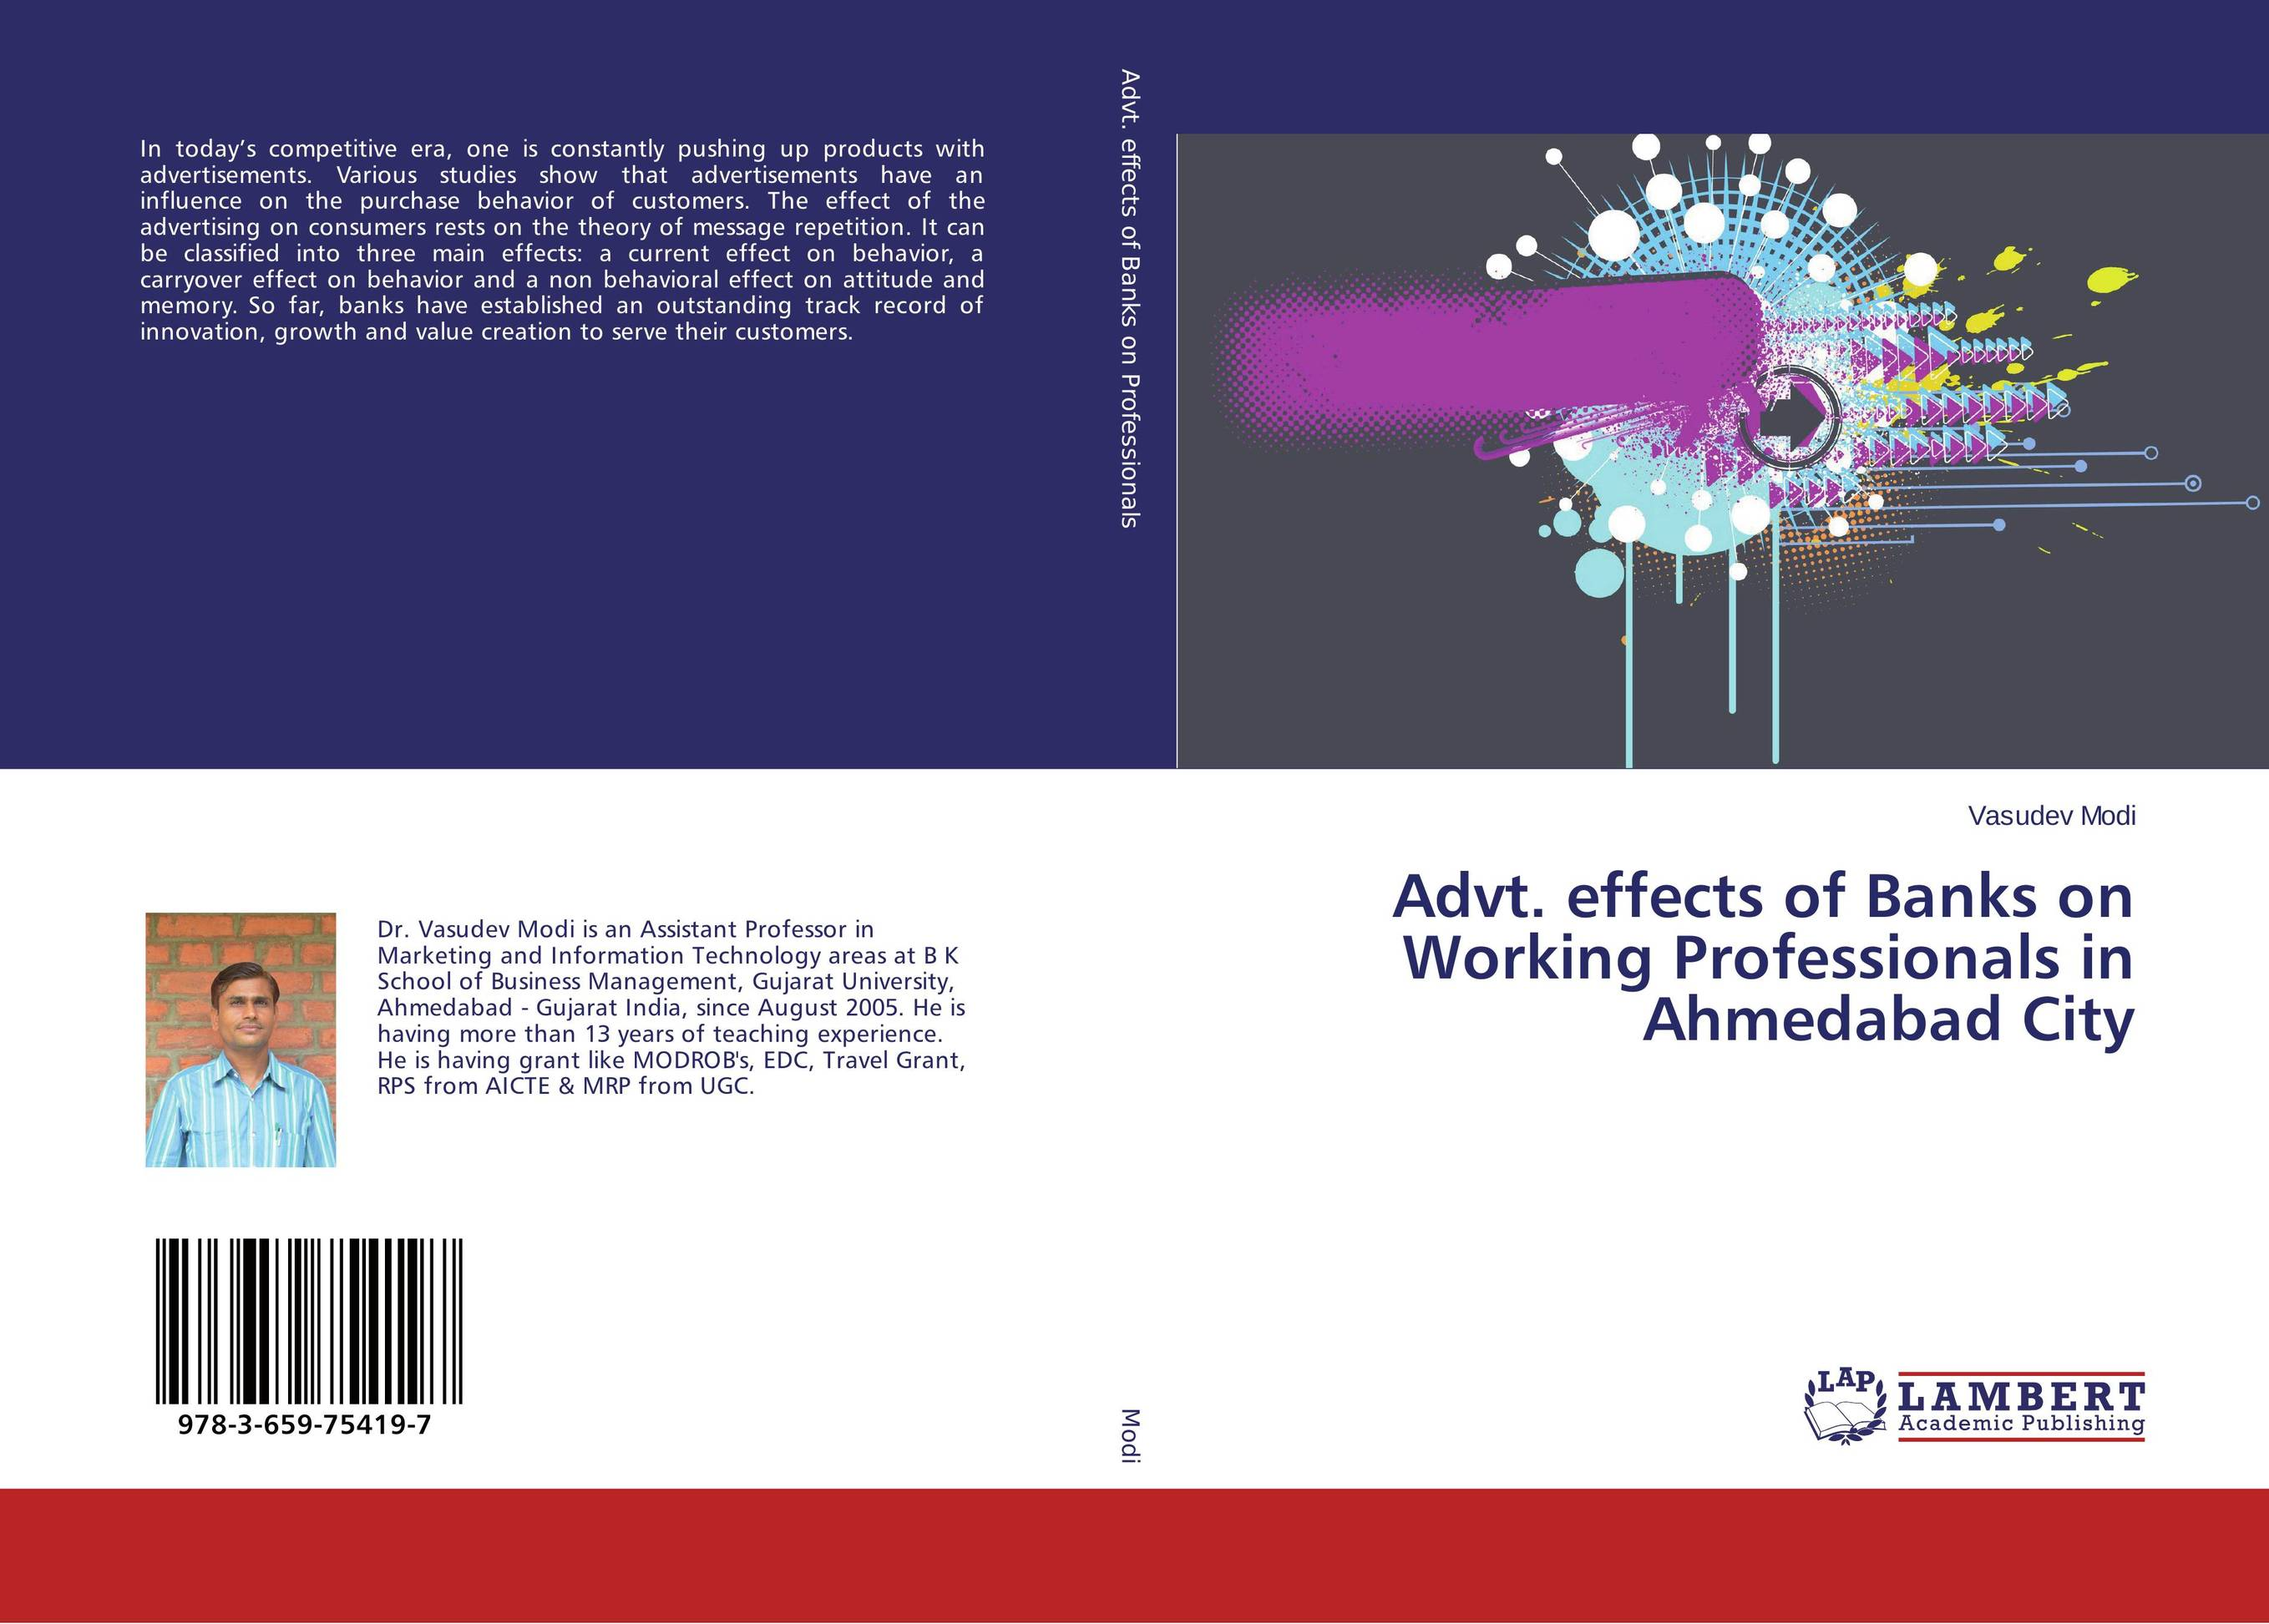 Advt. effects of Banks on Working Professionals in Ahmedabad City the effect of advertisement on consumer behavior and brand preference